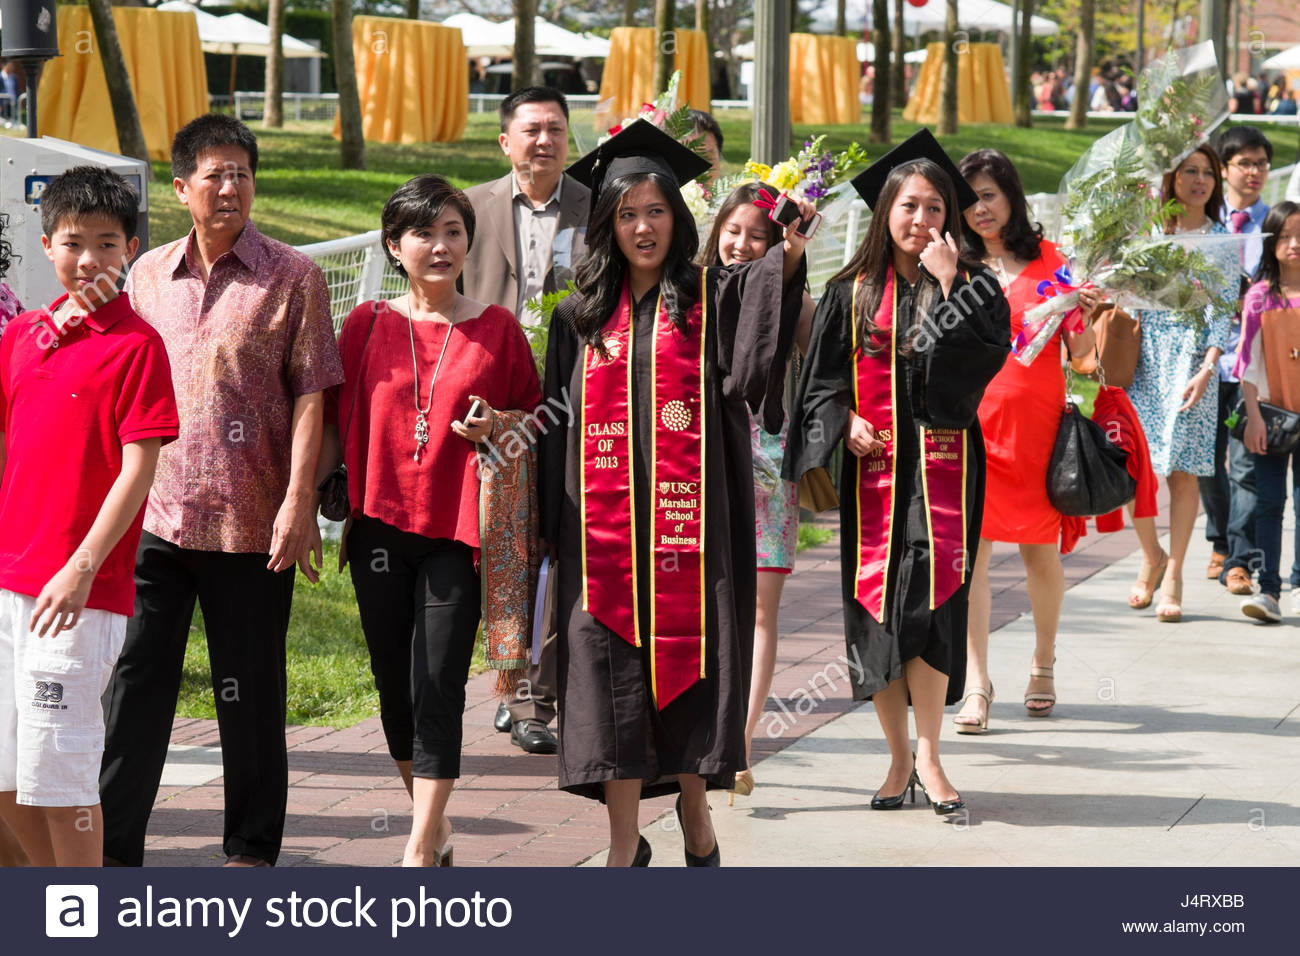 Fantastic Usc Cap And Gown Mold - Images for wedding gown ideas ...